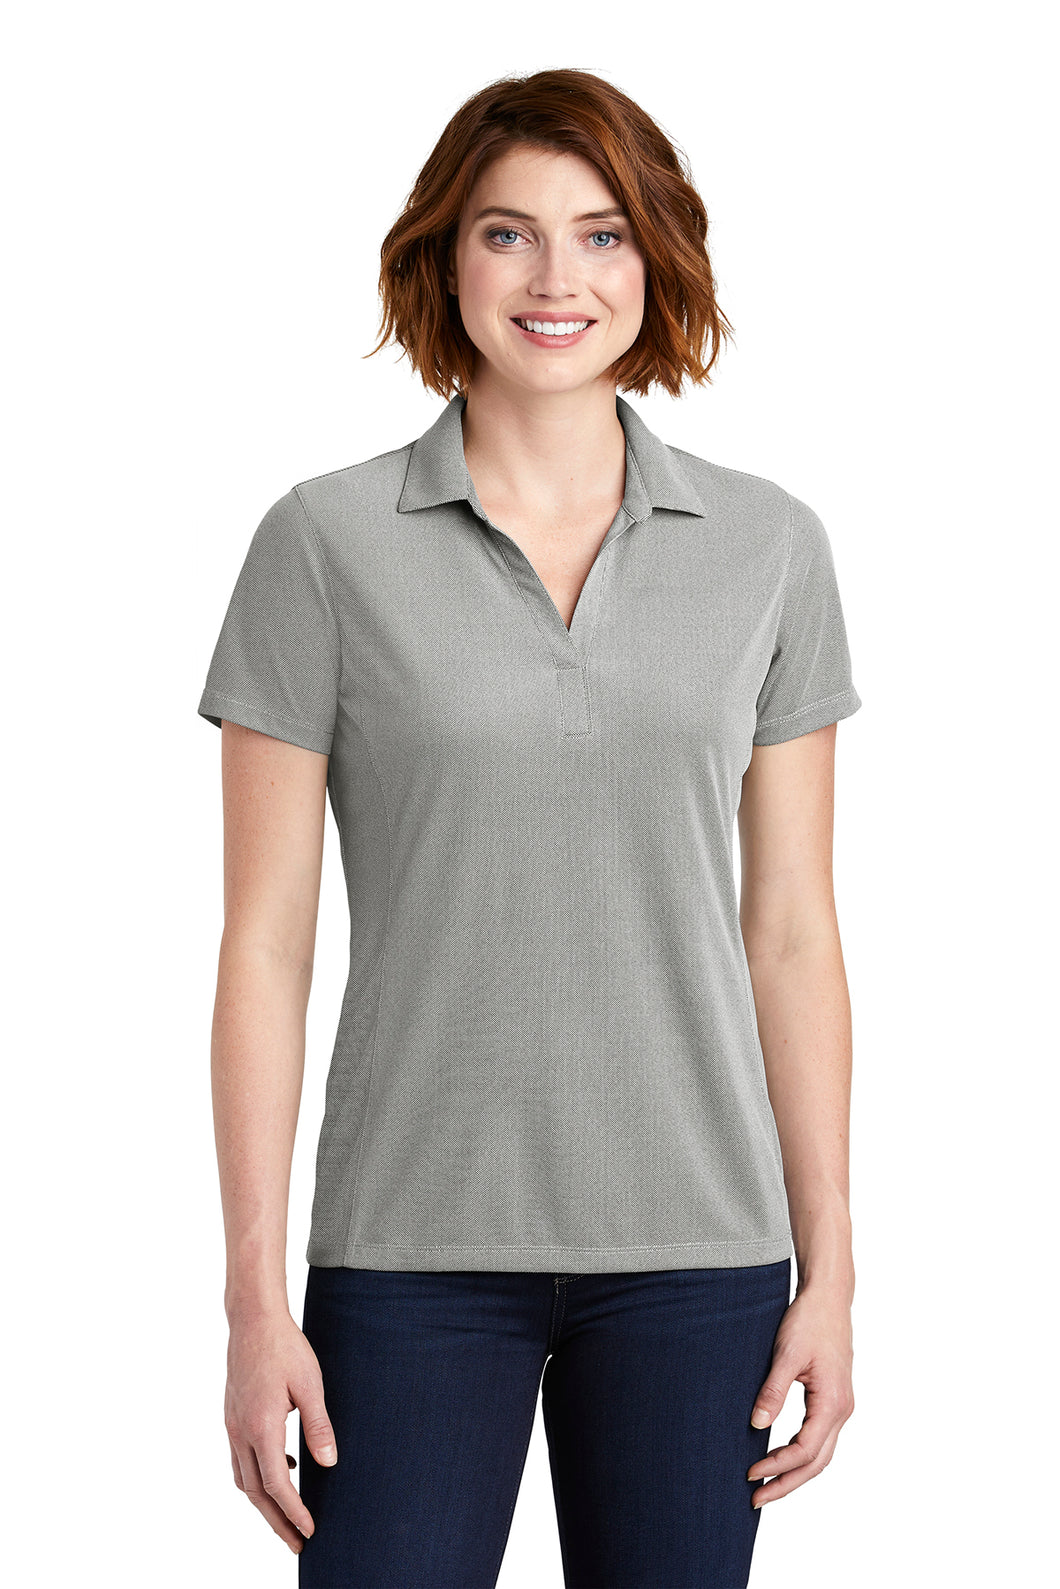 Port Authority ® Ladies Poly Oxford Pique Polo - FCHC